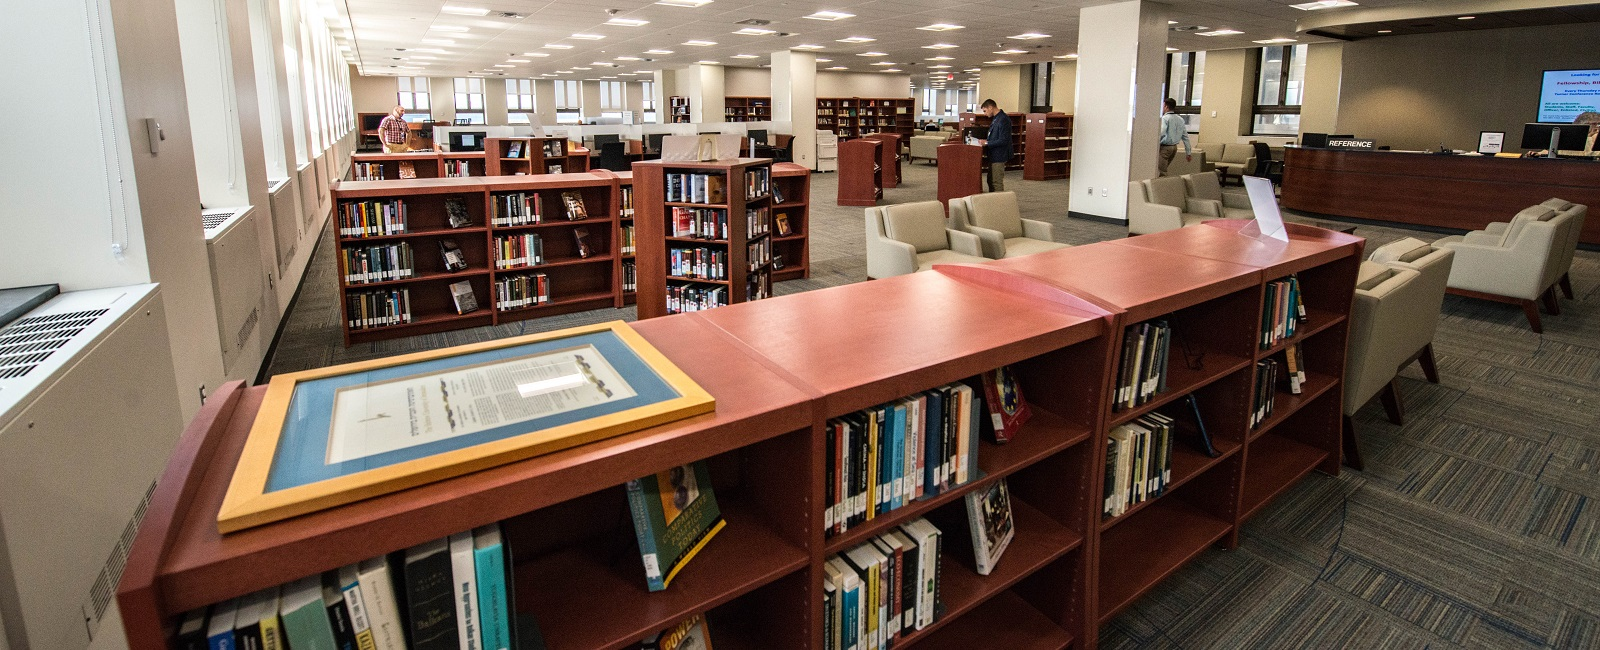 Learning Commons, Henry E. Eccles Library